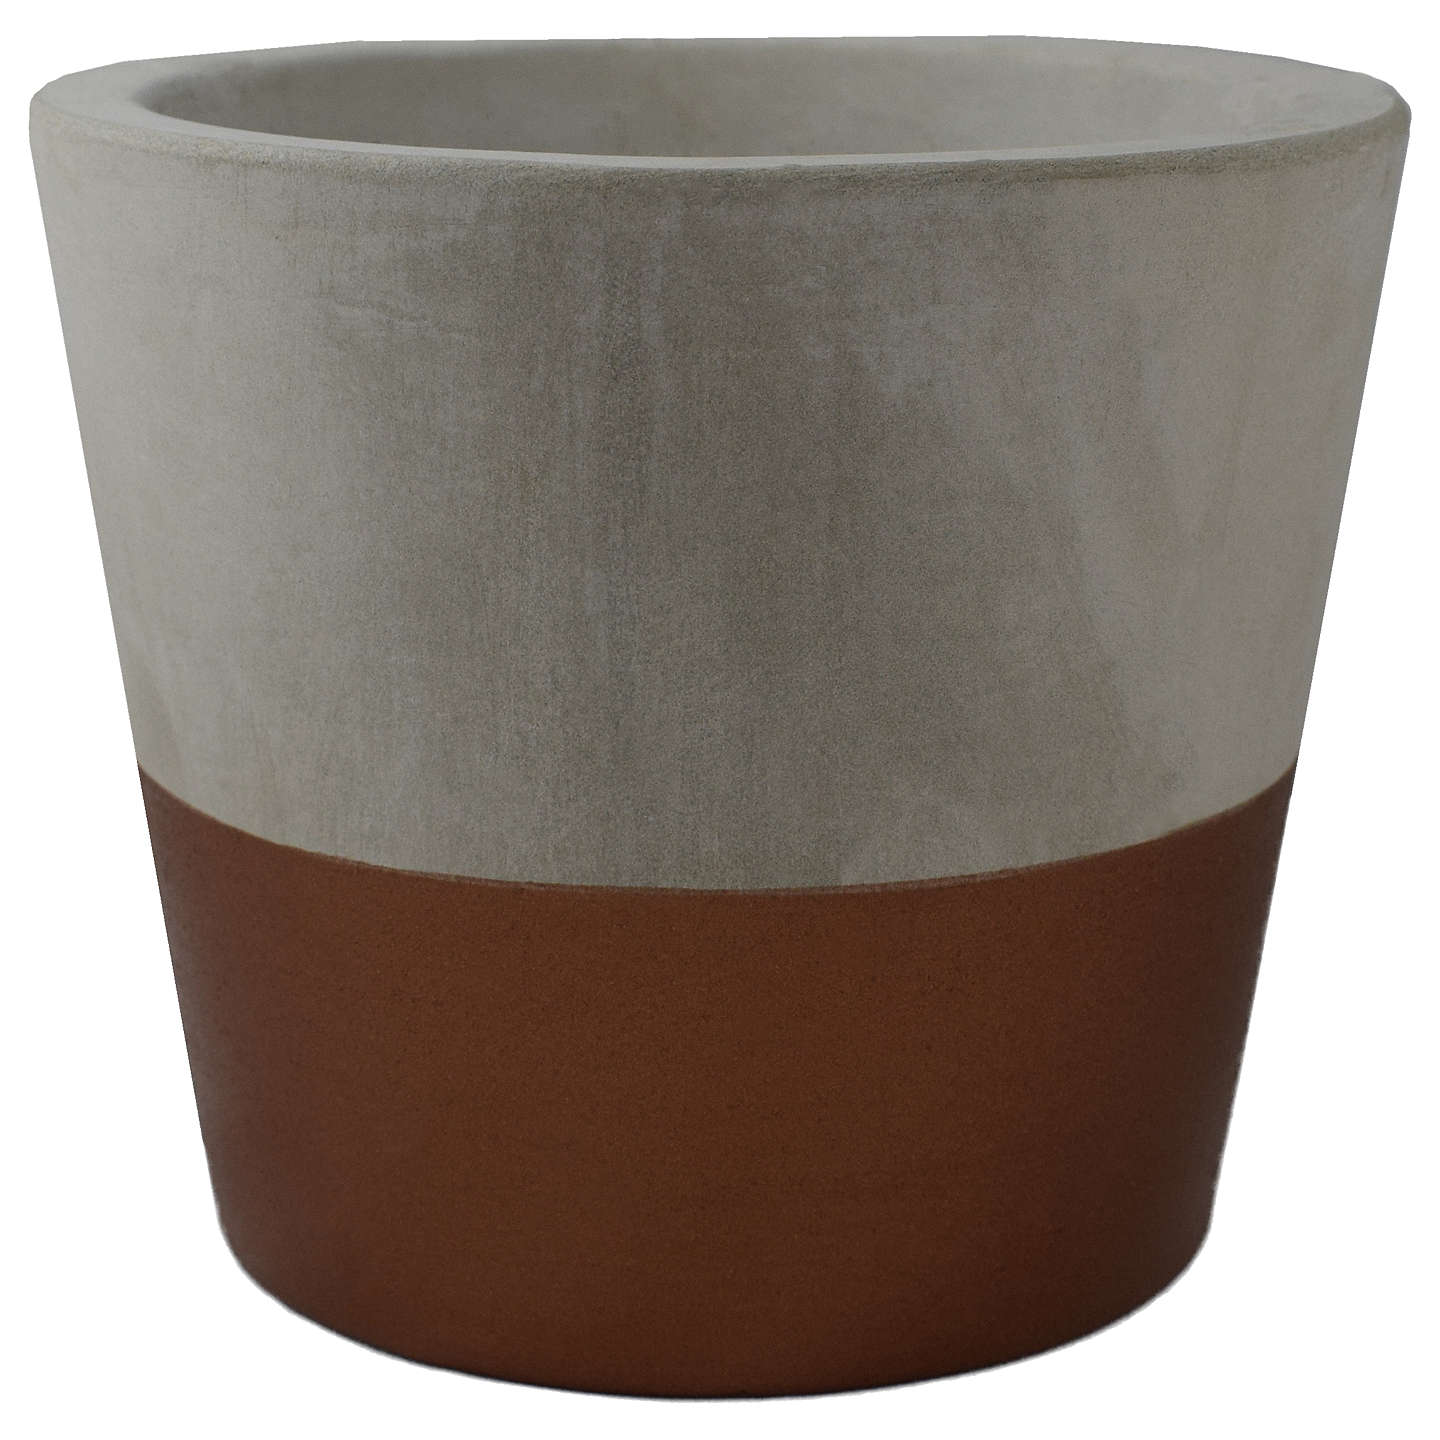 plant ceramic metaphys pinterest pin cement planter pots